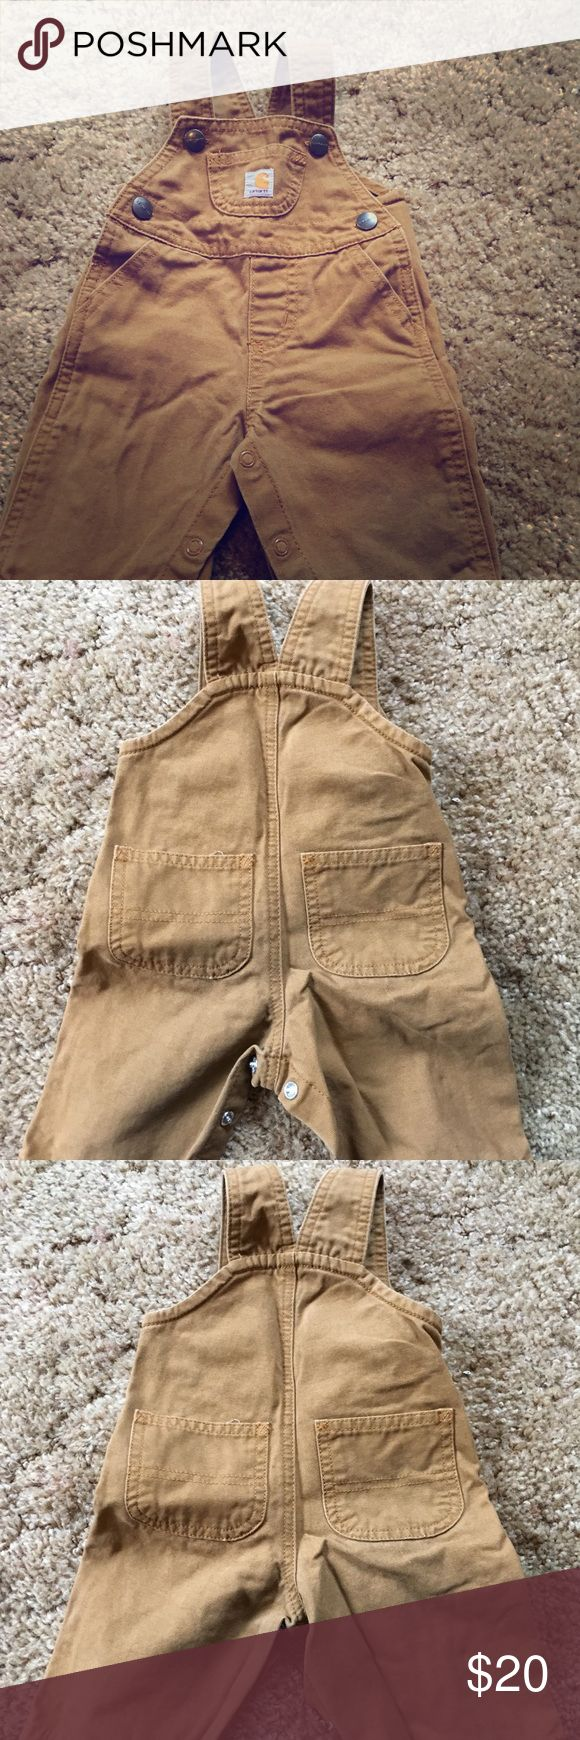 Carhartt overalls Completely adorable Only worn once for fall pictures No stains rips or tears Clean smoke free home Carhartt Other